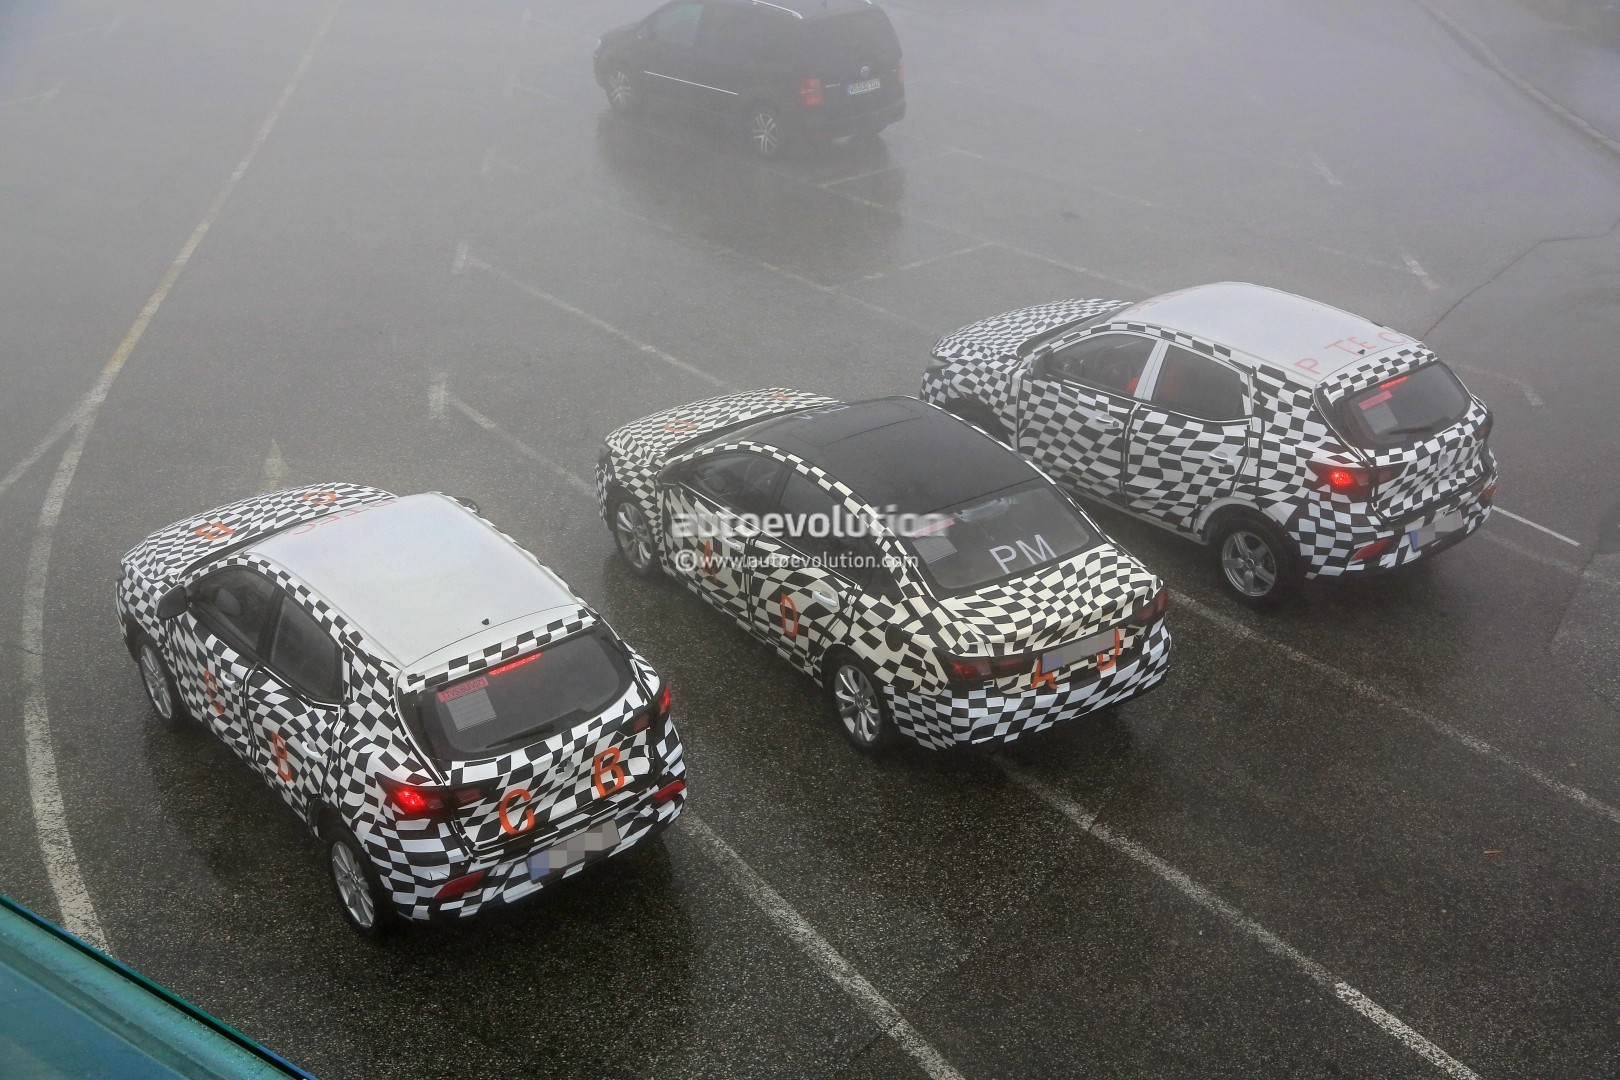 Two SUVs and one fastback on test in the Alps! Mg-zs-compact-suv-prototype-makes-spyshot-debut-on-track-for-2017-launch_15